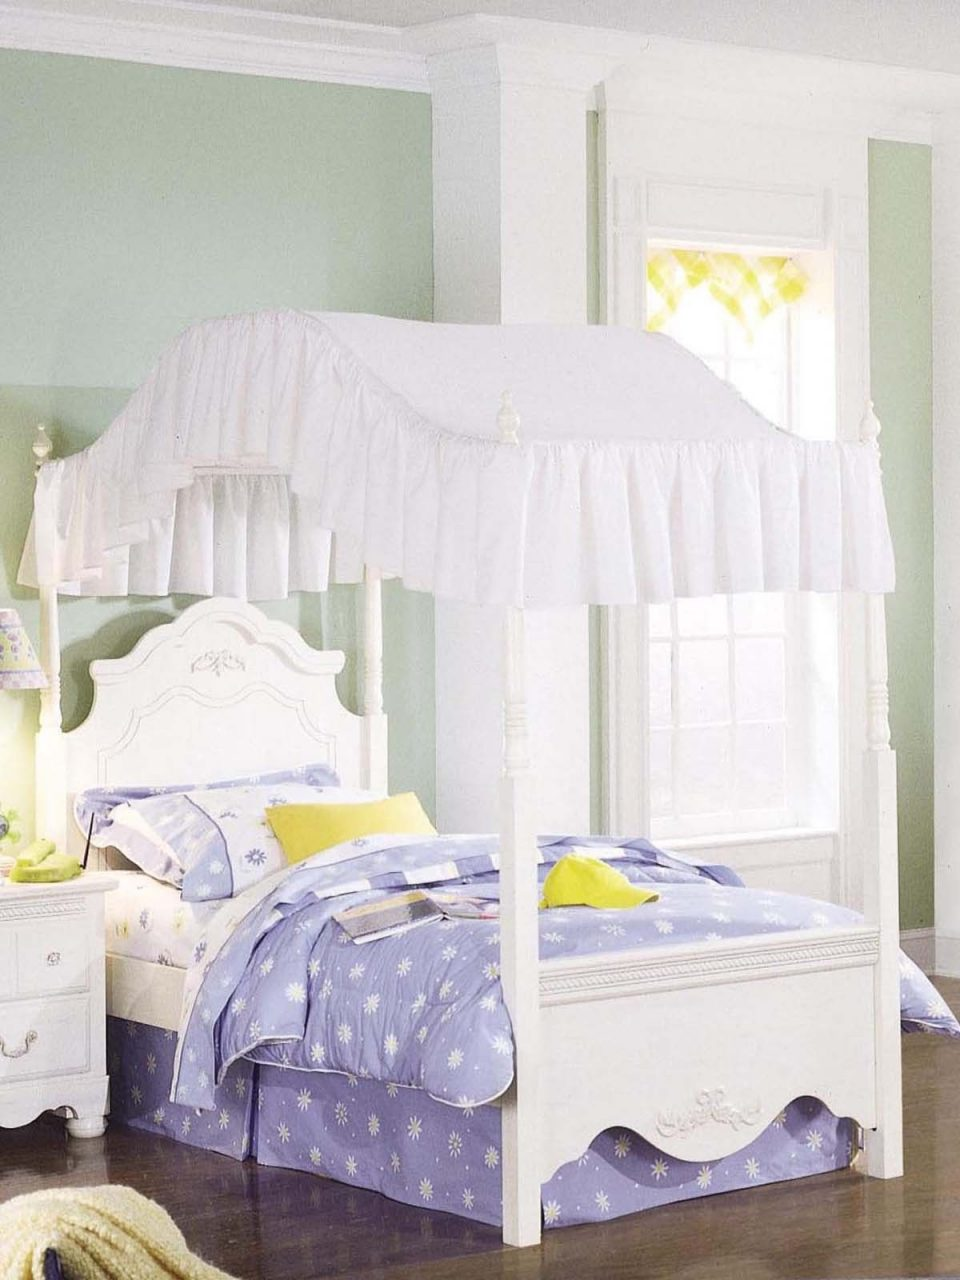 Lovely White Custom Wooden Bed With Cool Canopy Bed Curtains And